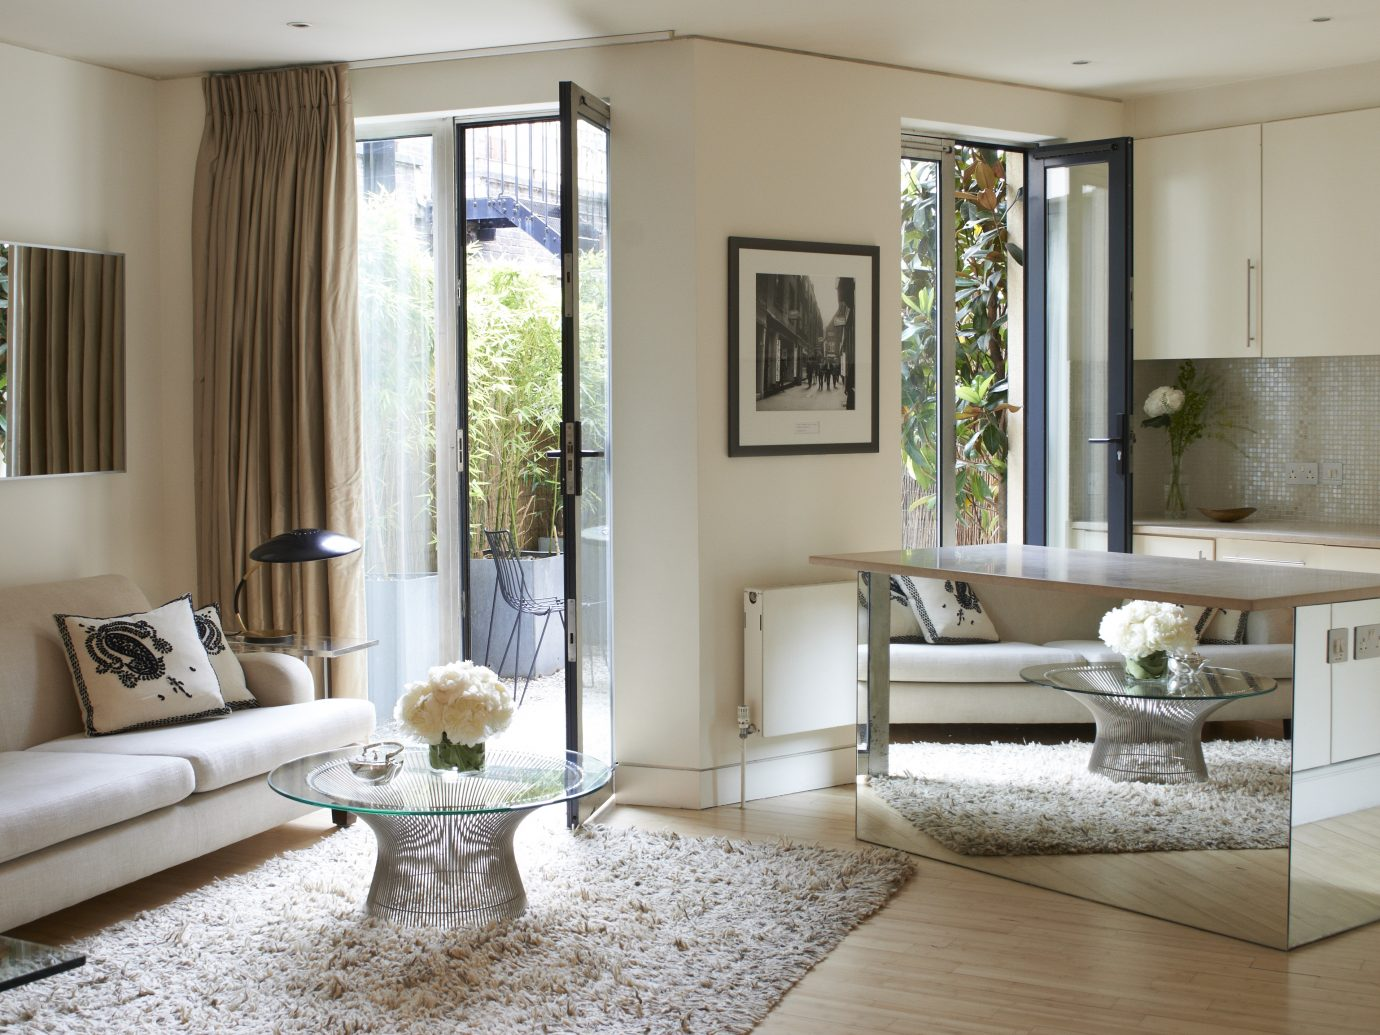 Living room interior at the Maddox St portion of the Living Rooms in London